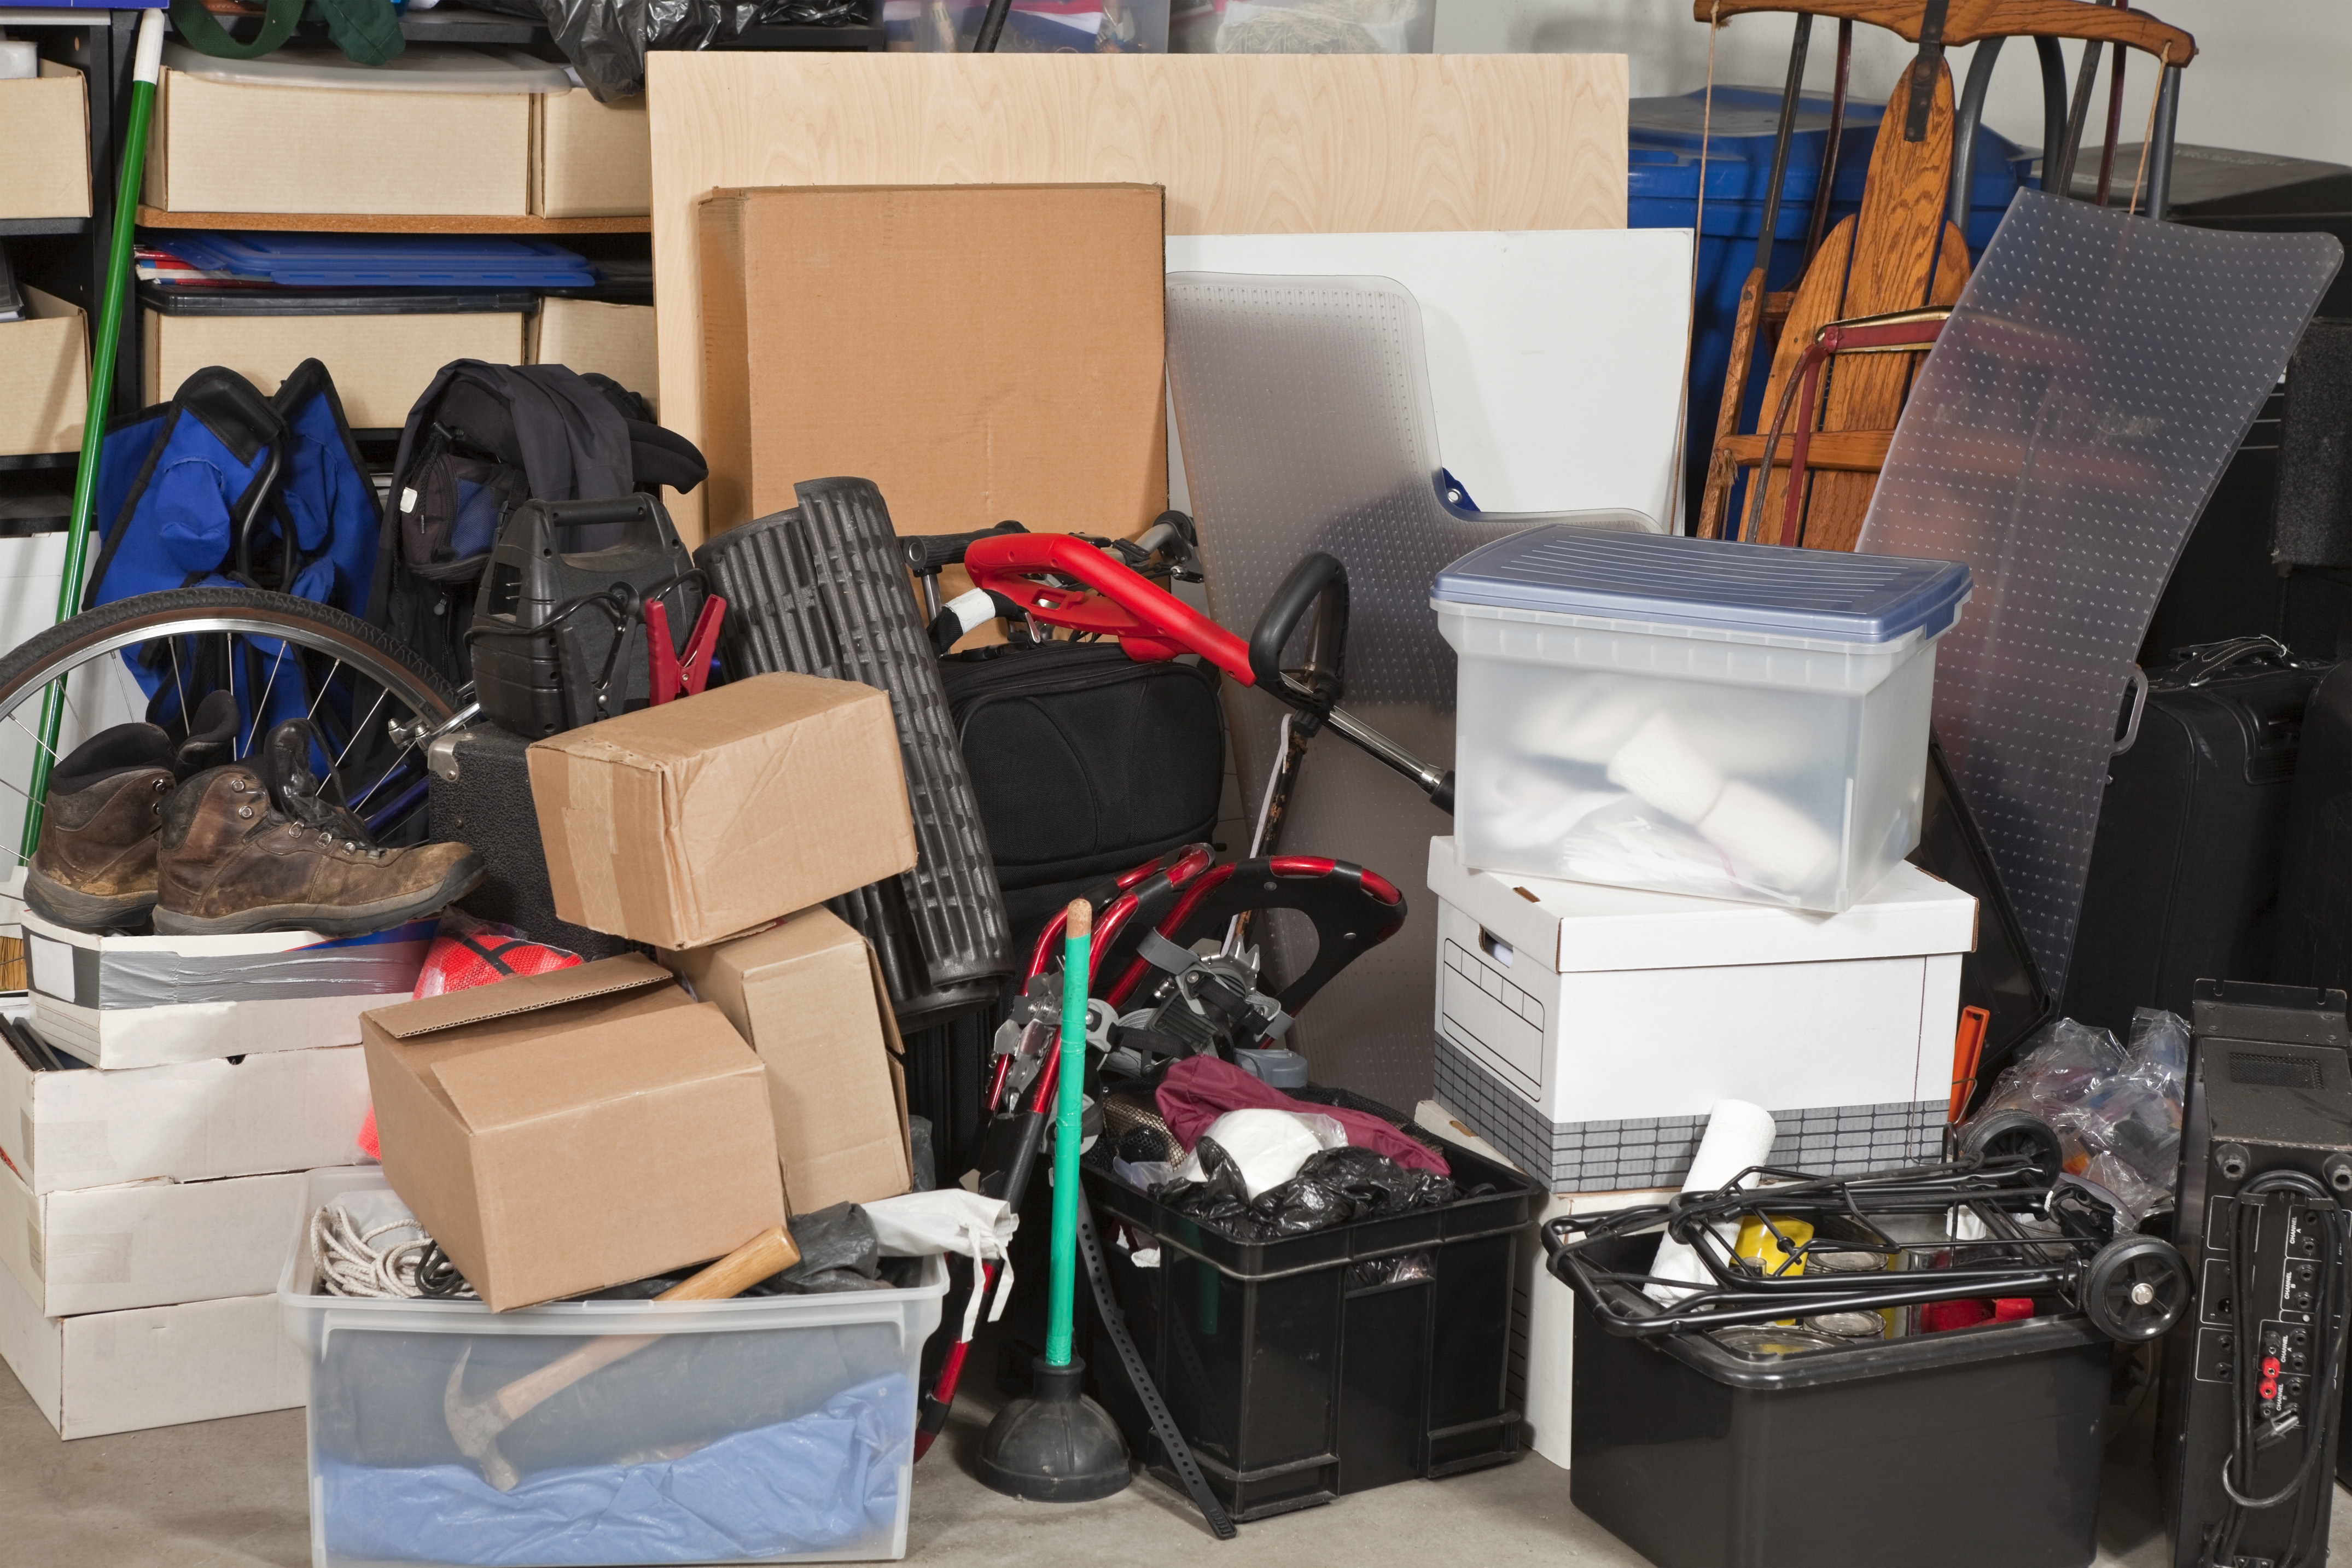 Image result for What's Causing Clutter in Your Home? A New Year, a New Home